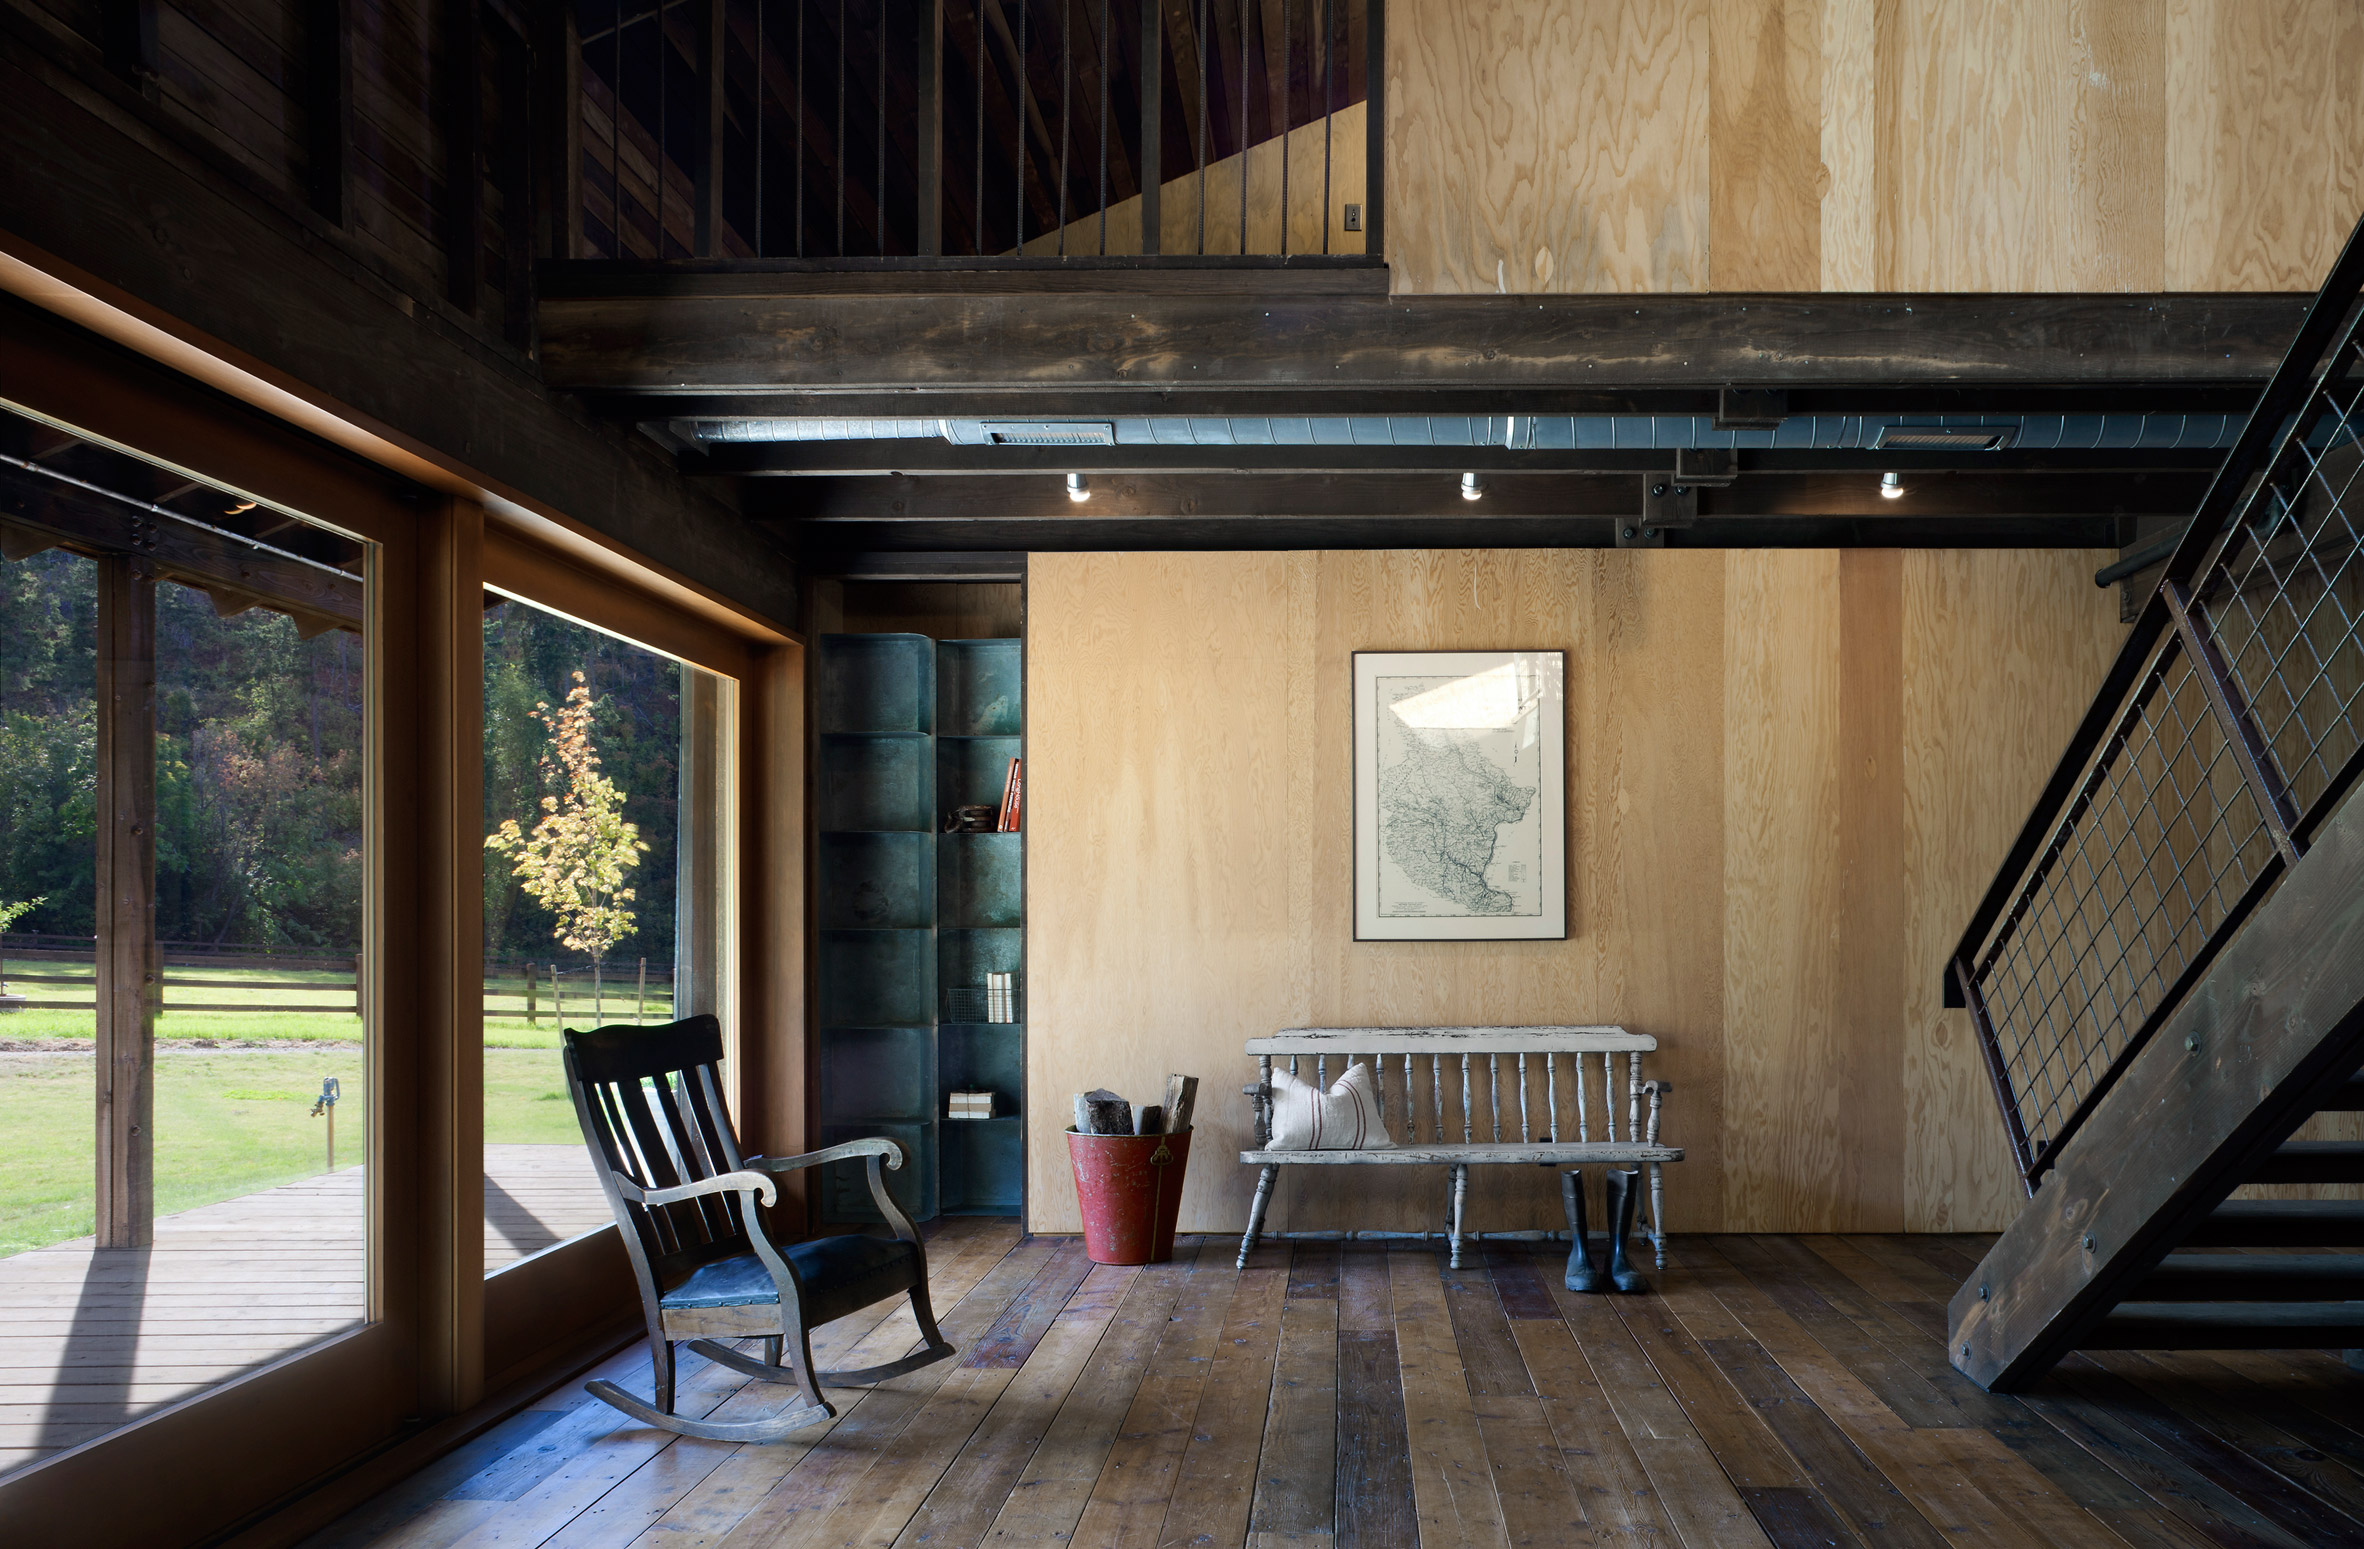 Mw works architecture - Barn Transformed Becomes Gorgeous Rustic Home In Pacific Northwest